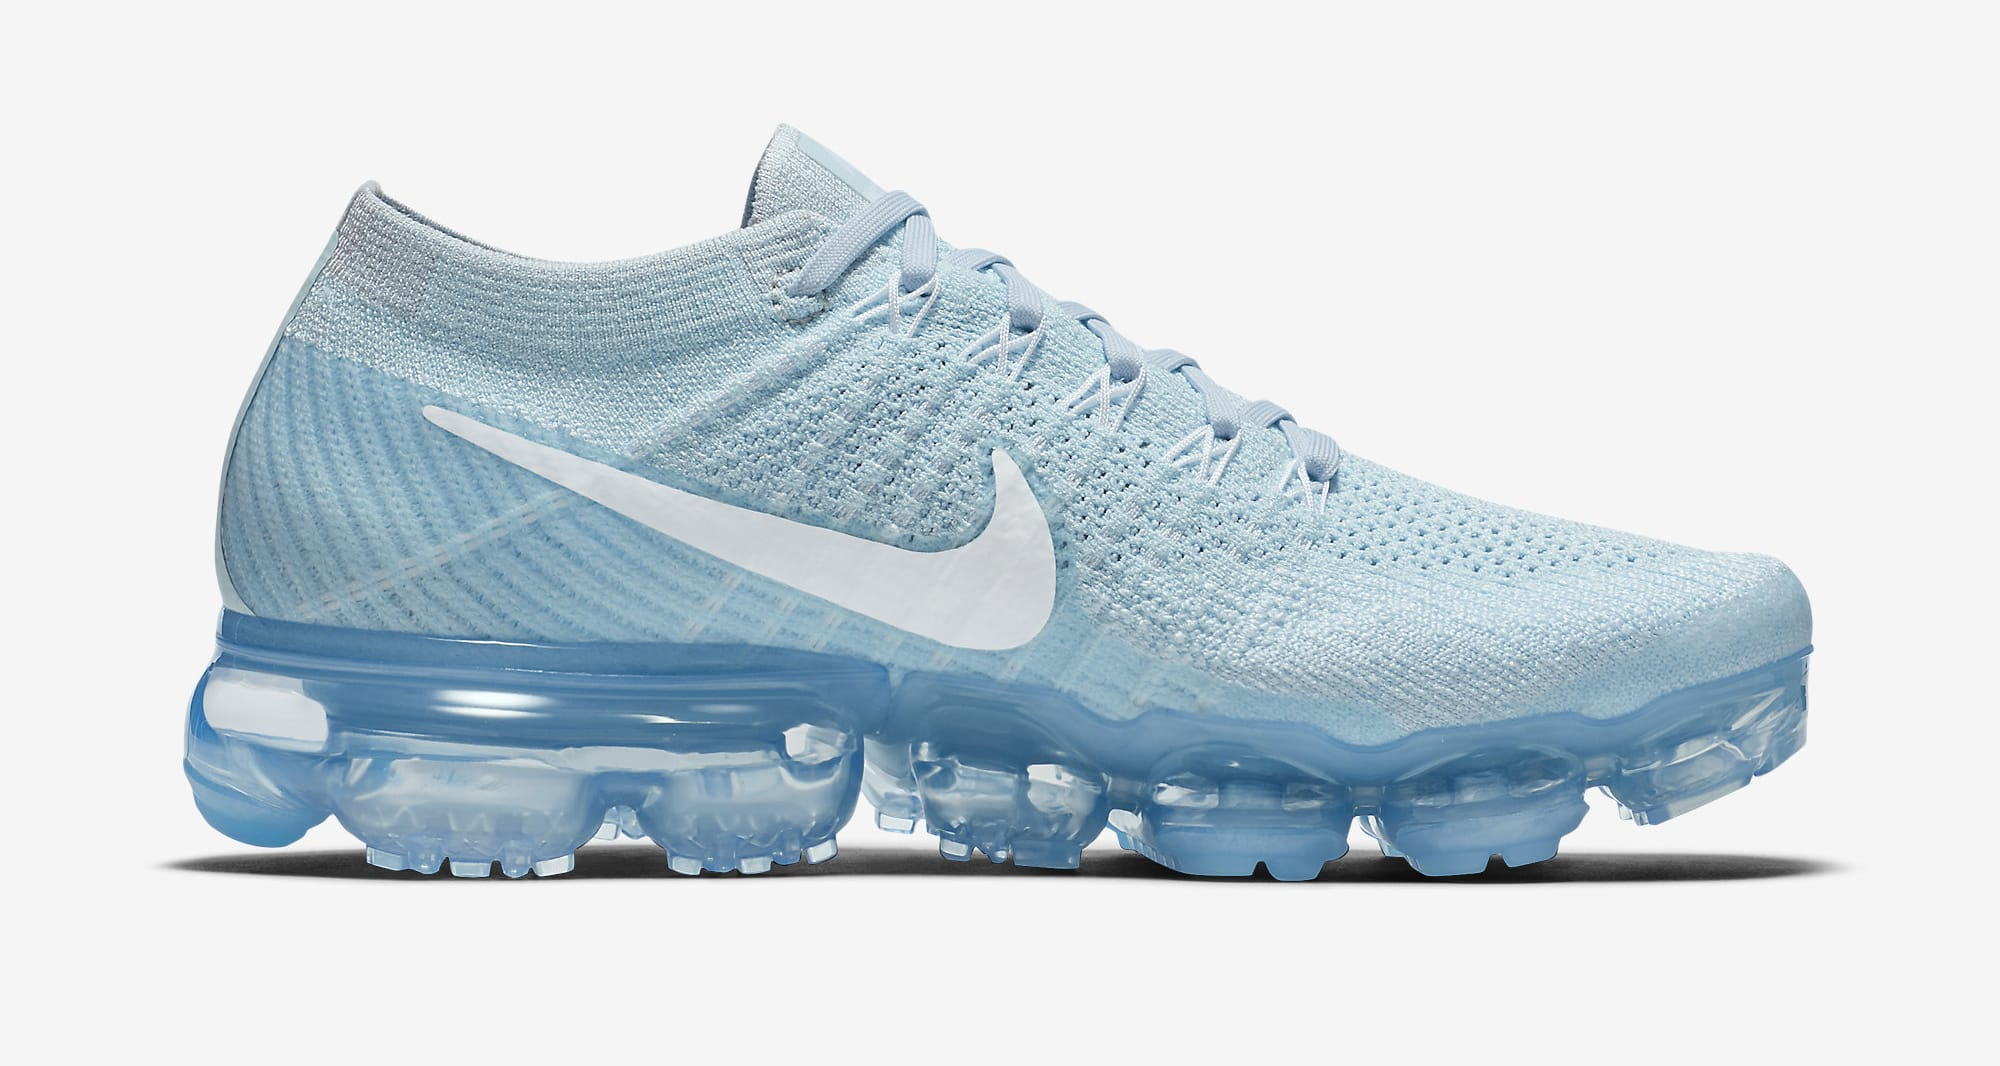 buy online 39afd 84e56 Buy Nike Cheap Air Vapormax Flyknit Running Shoes Sale ...